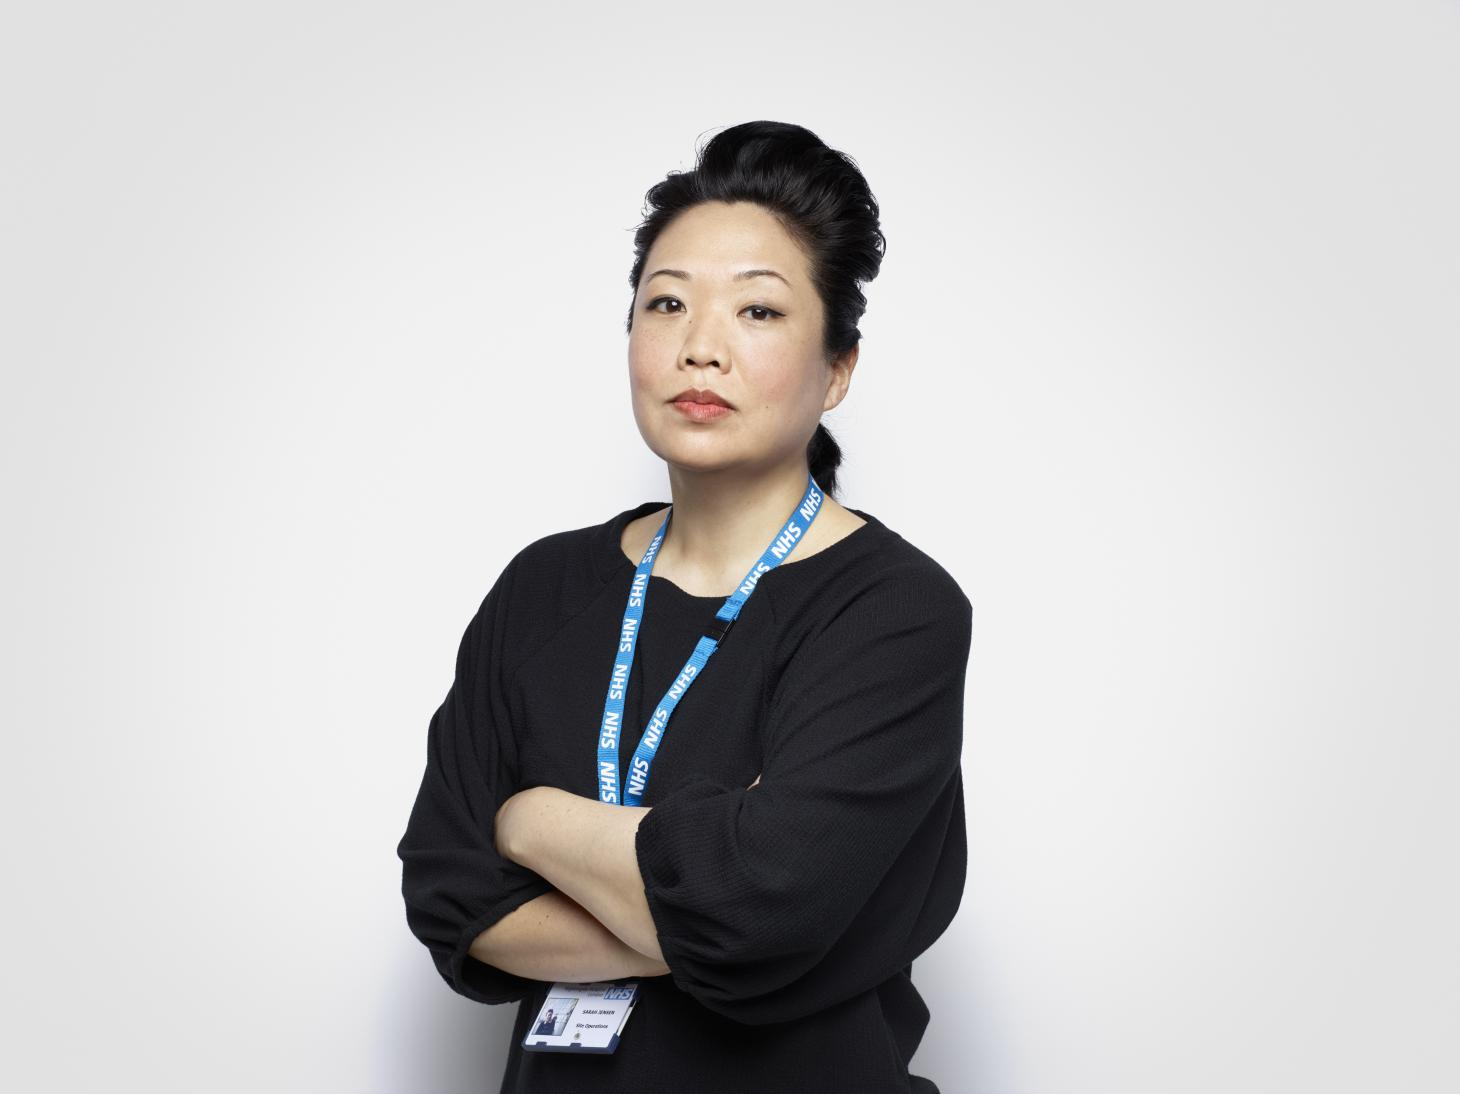 Sarah Jensen NHS frontline hero photographed by Rankin